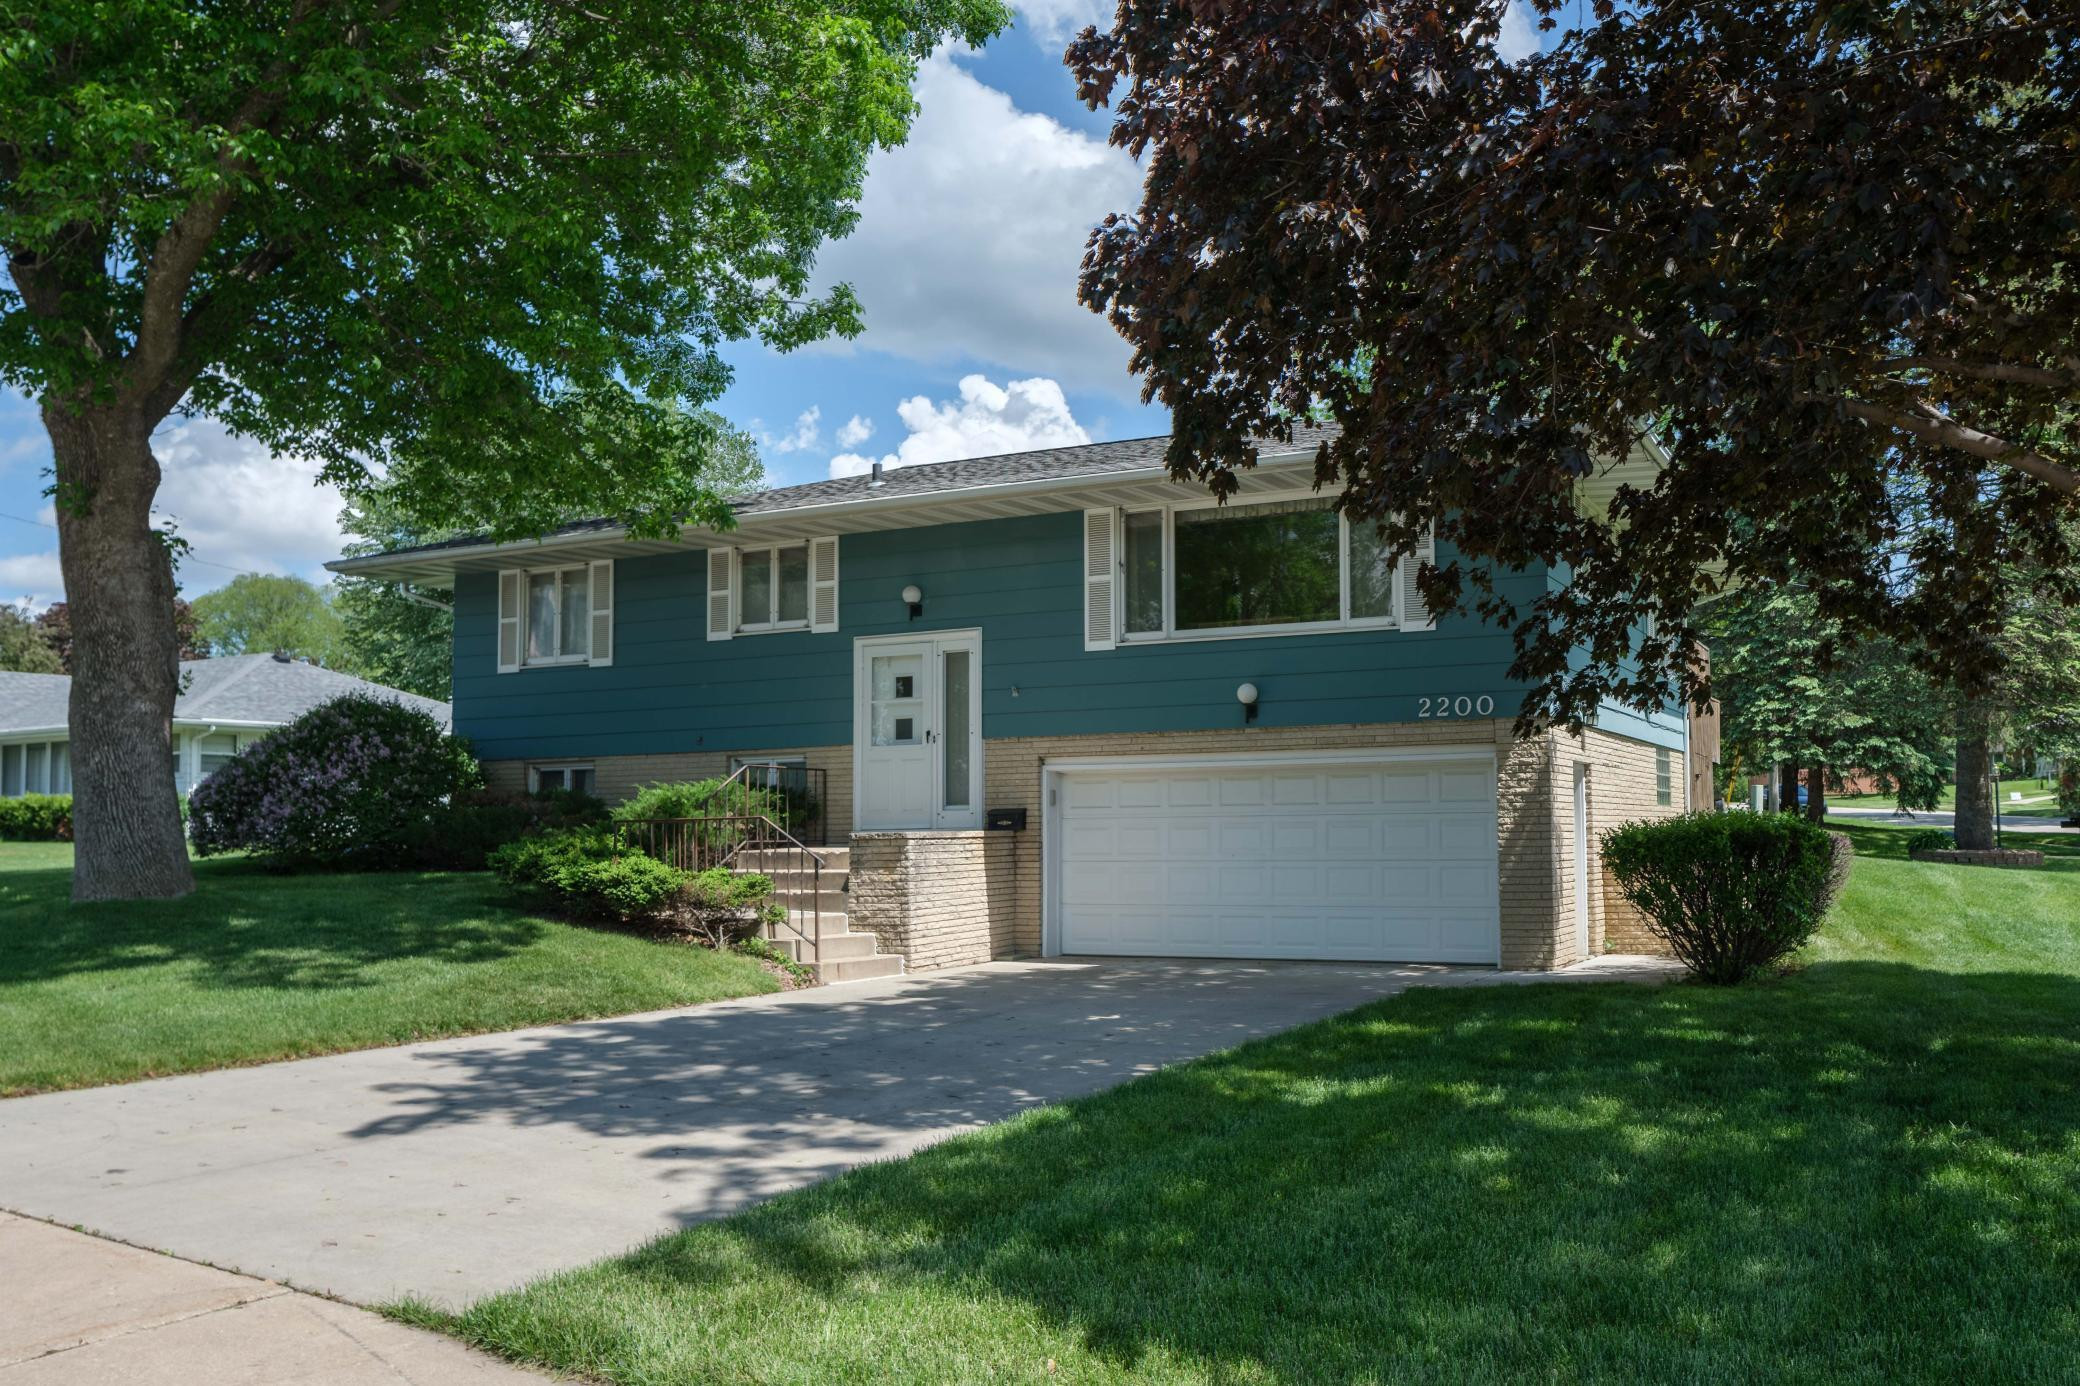 2200 Elton Hills Drive NW, Rochester, MN 55901